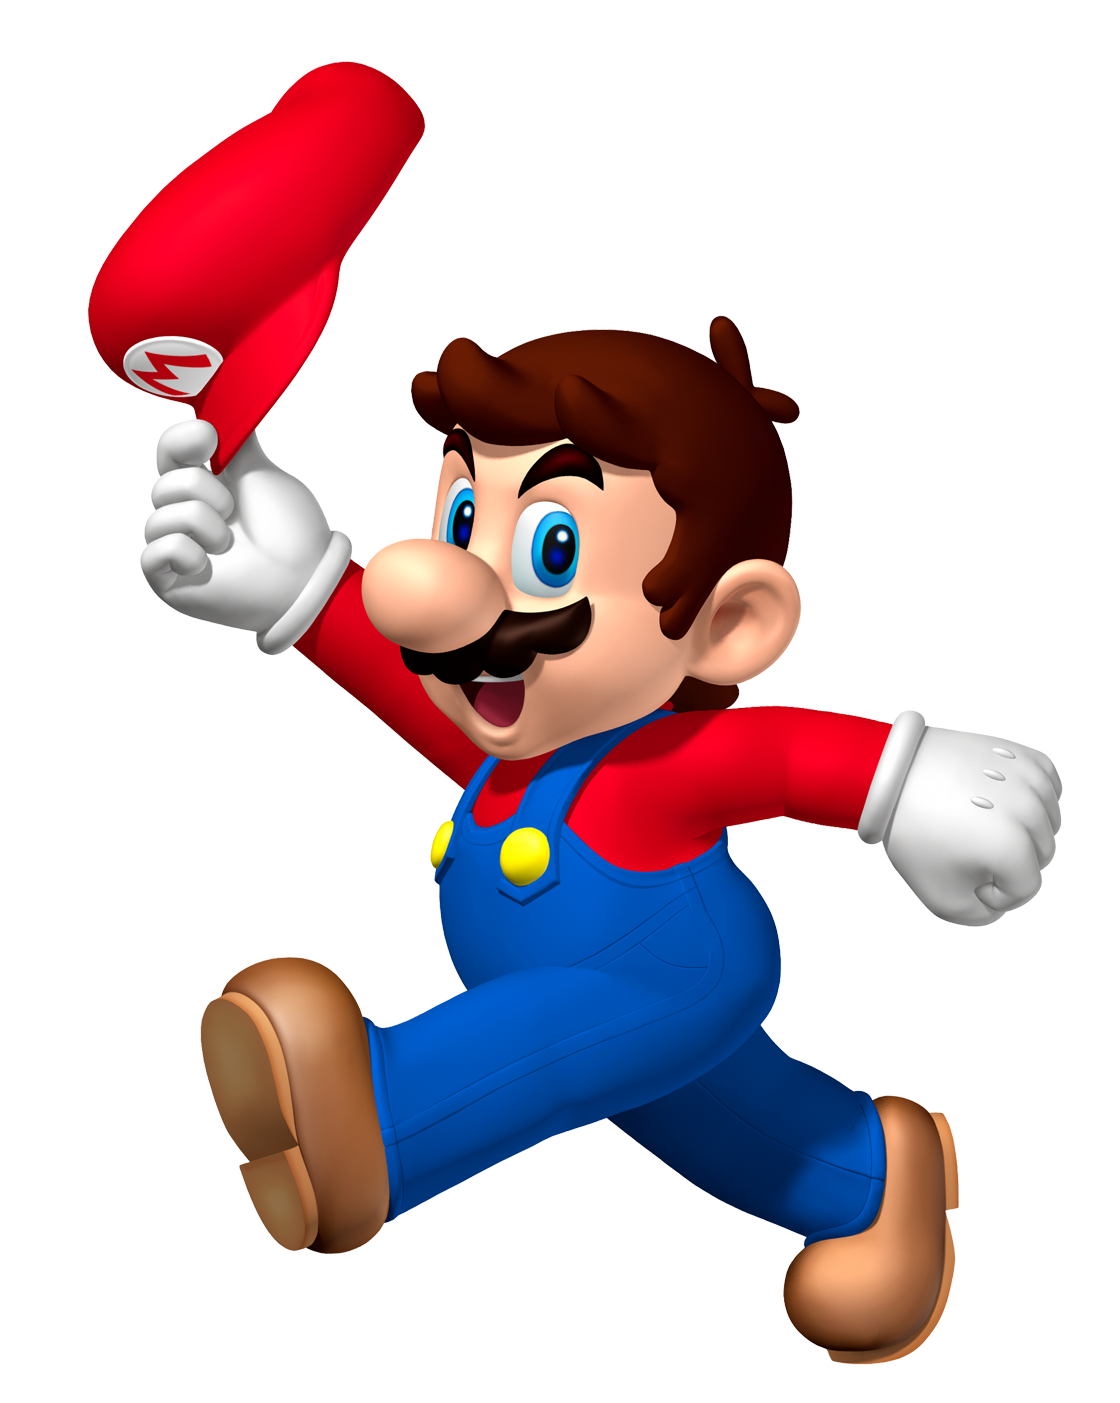 Mario wing hat png. Mariowiki fandom powered by